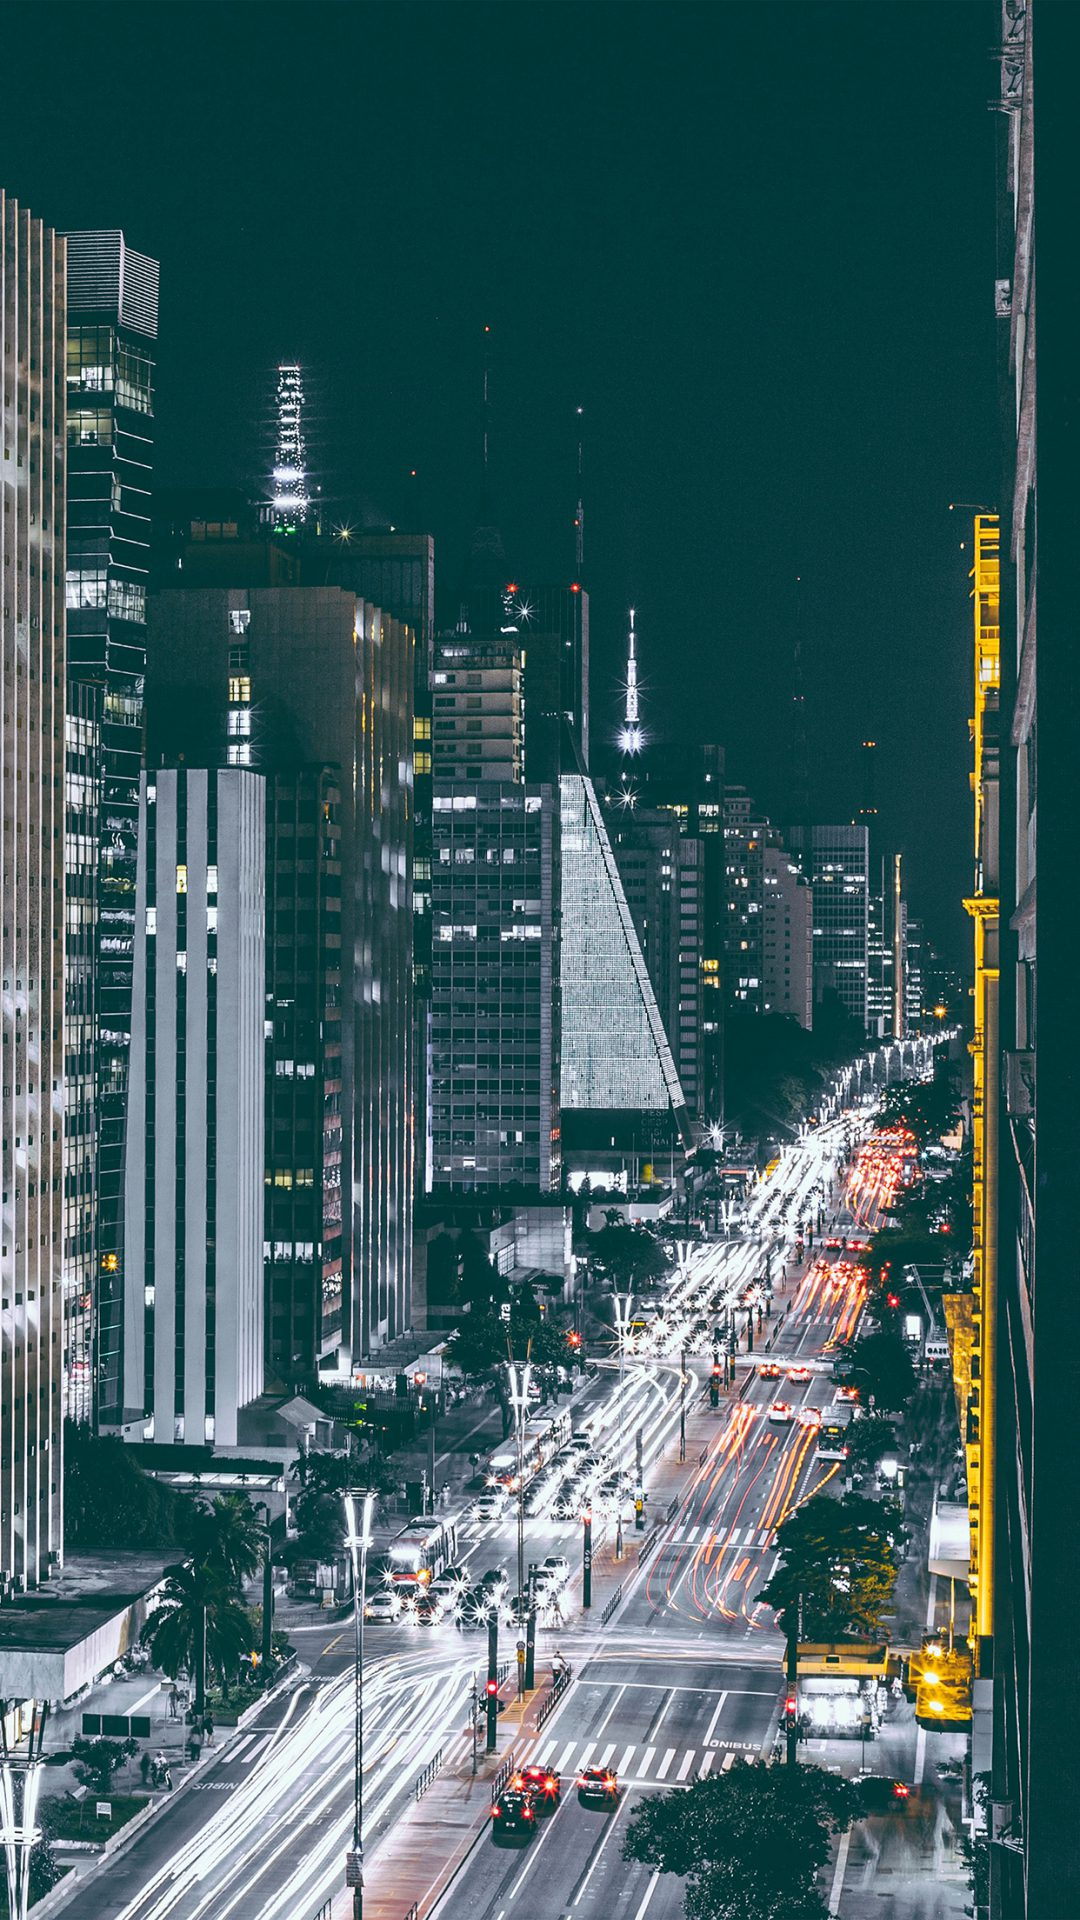 City Night View Urban Street